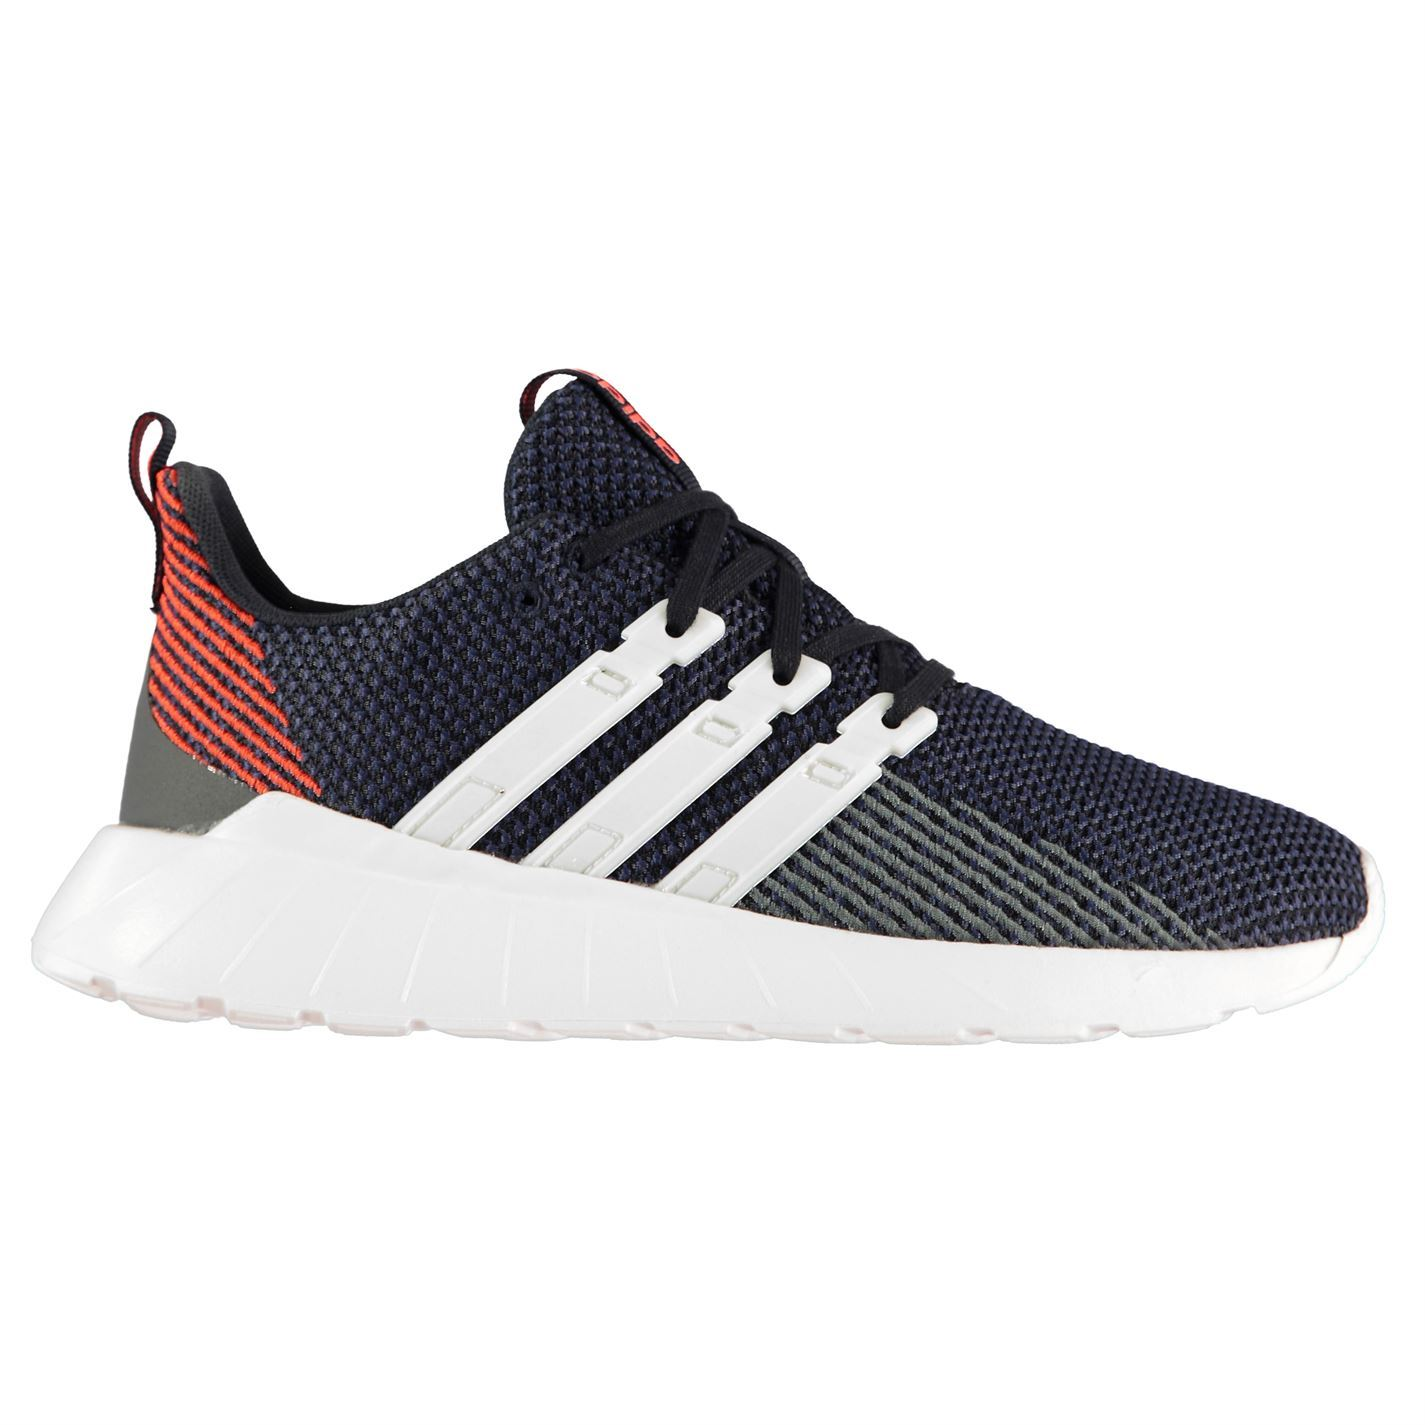 Details about Adidas Questar Flow Junior Boys Trainers Running athleisure shoes show original title